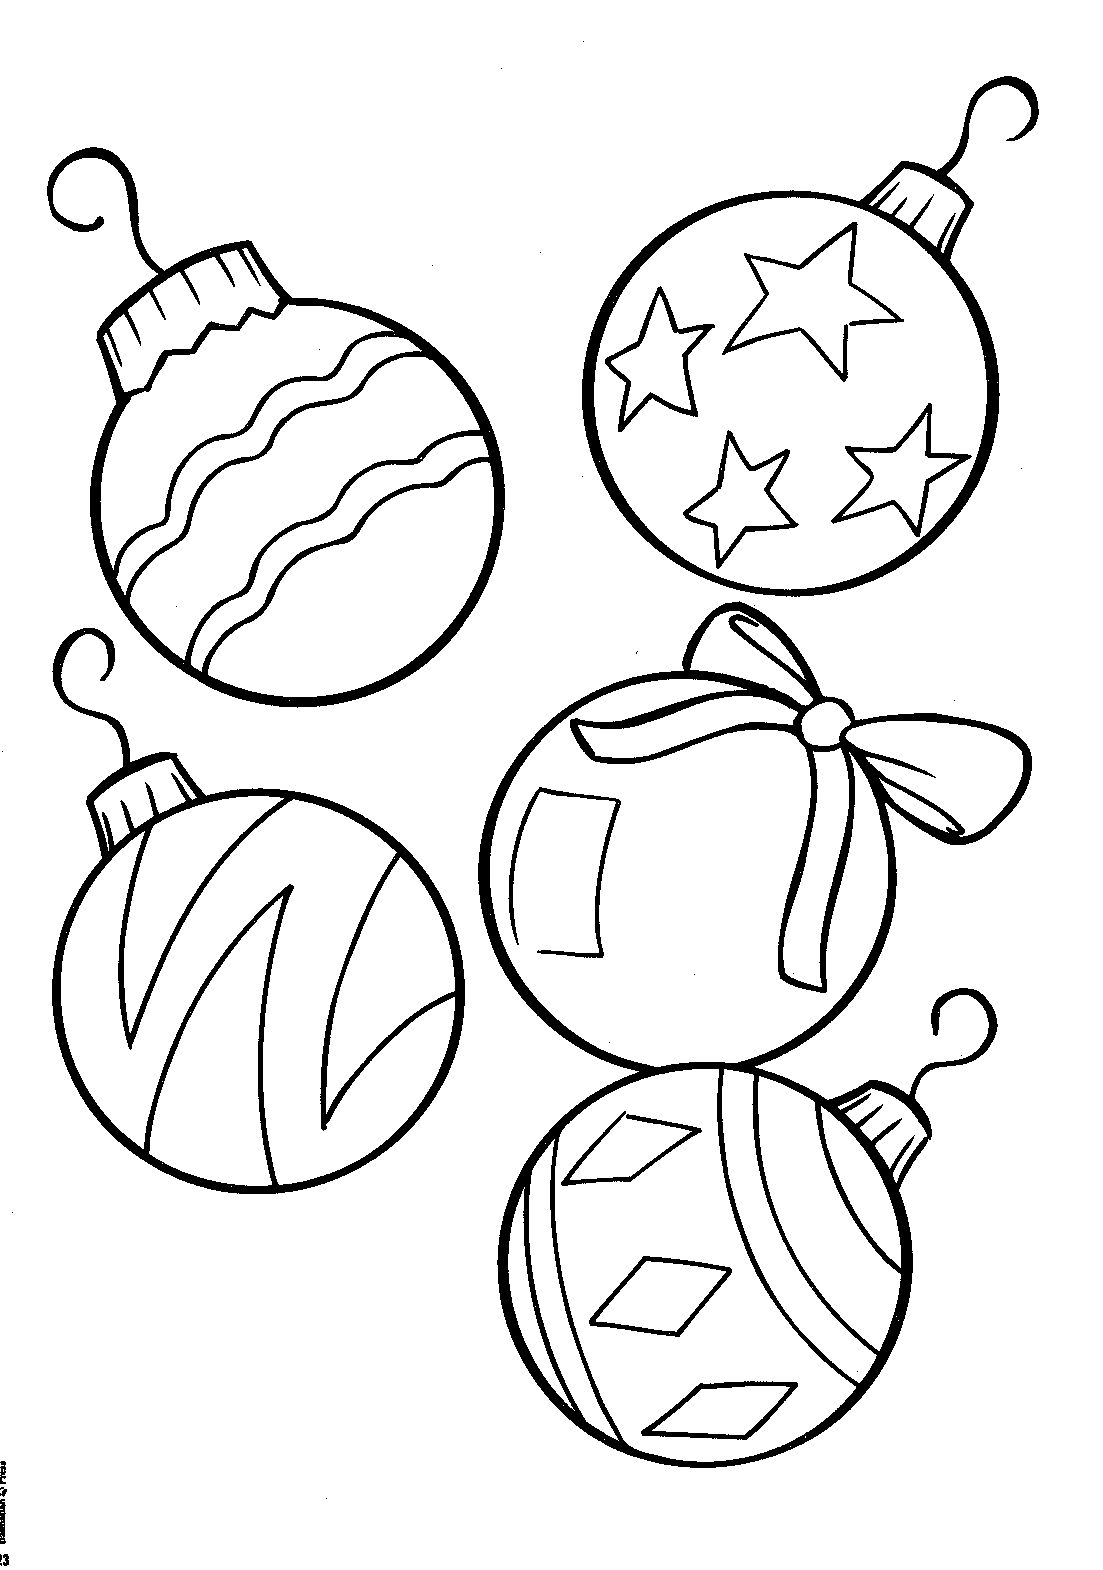 Christmas Coloring Ornaments Printable With Drawn Free Clipart On